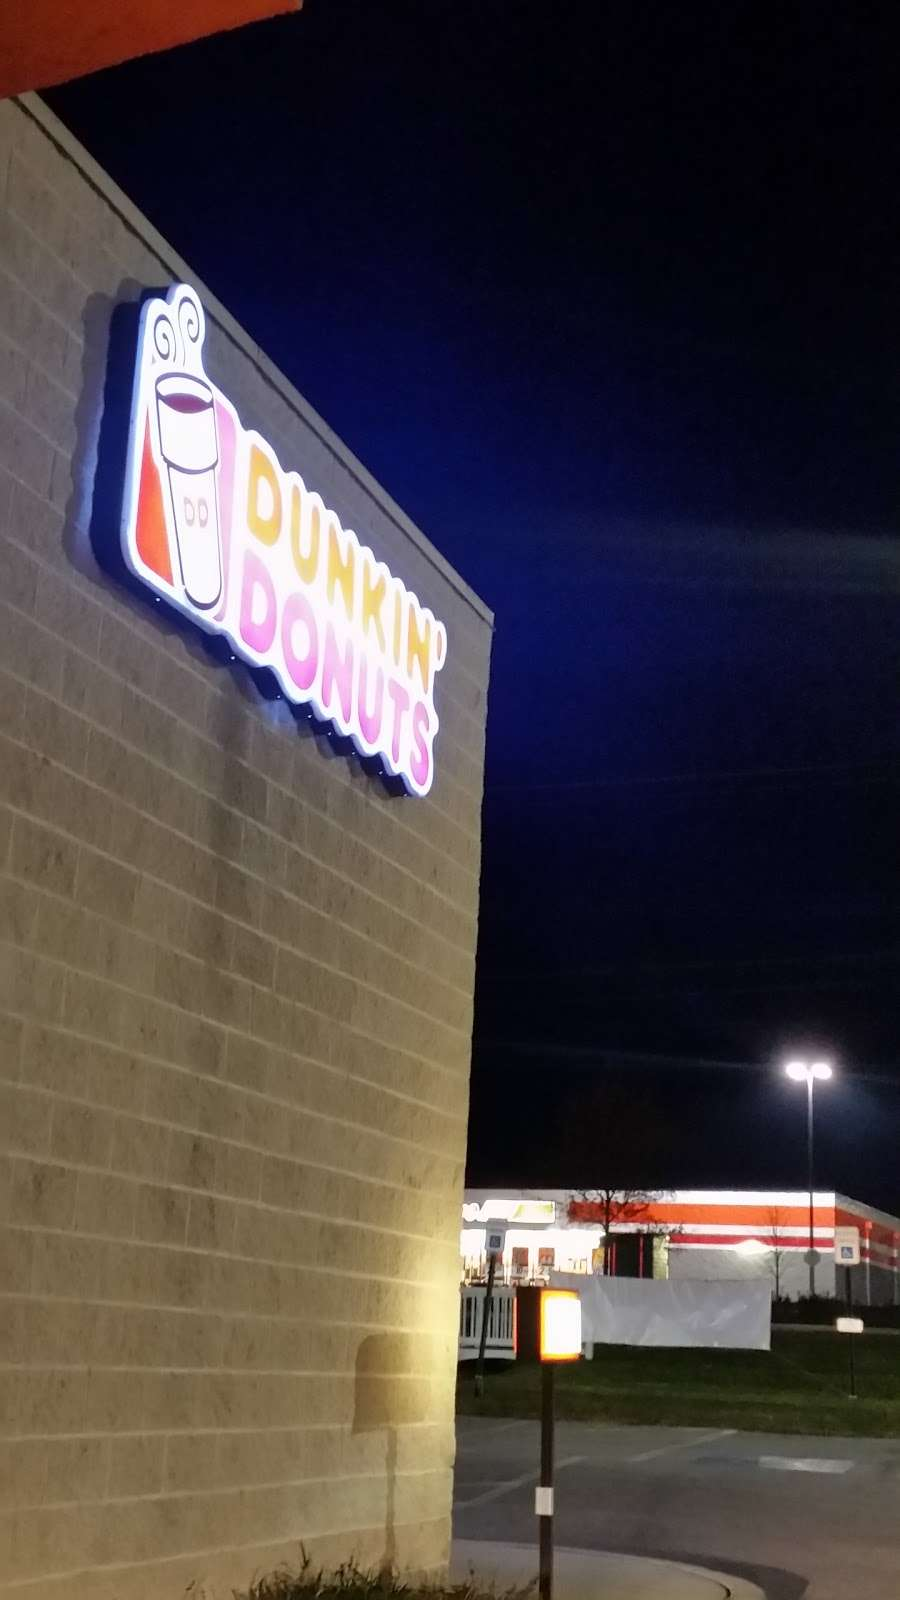 Dunkin Donuts - cafe  | Photo 7 of 10 | Address: 321 N 3rd St, Oxford, PA 19363, USA | Phone: (610) 932-1992